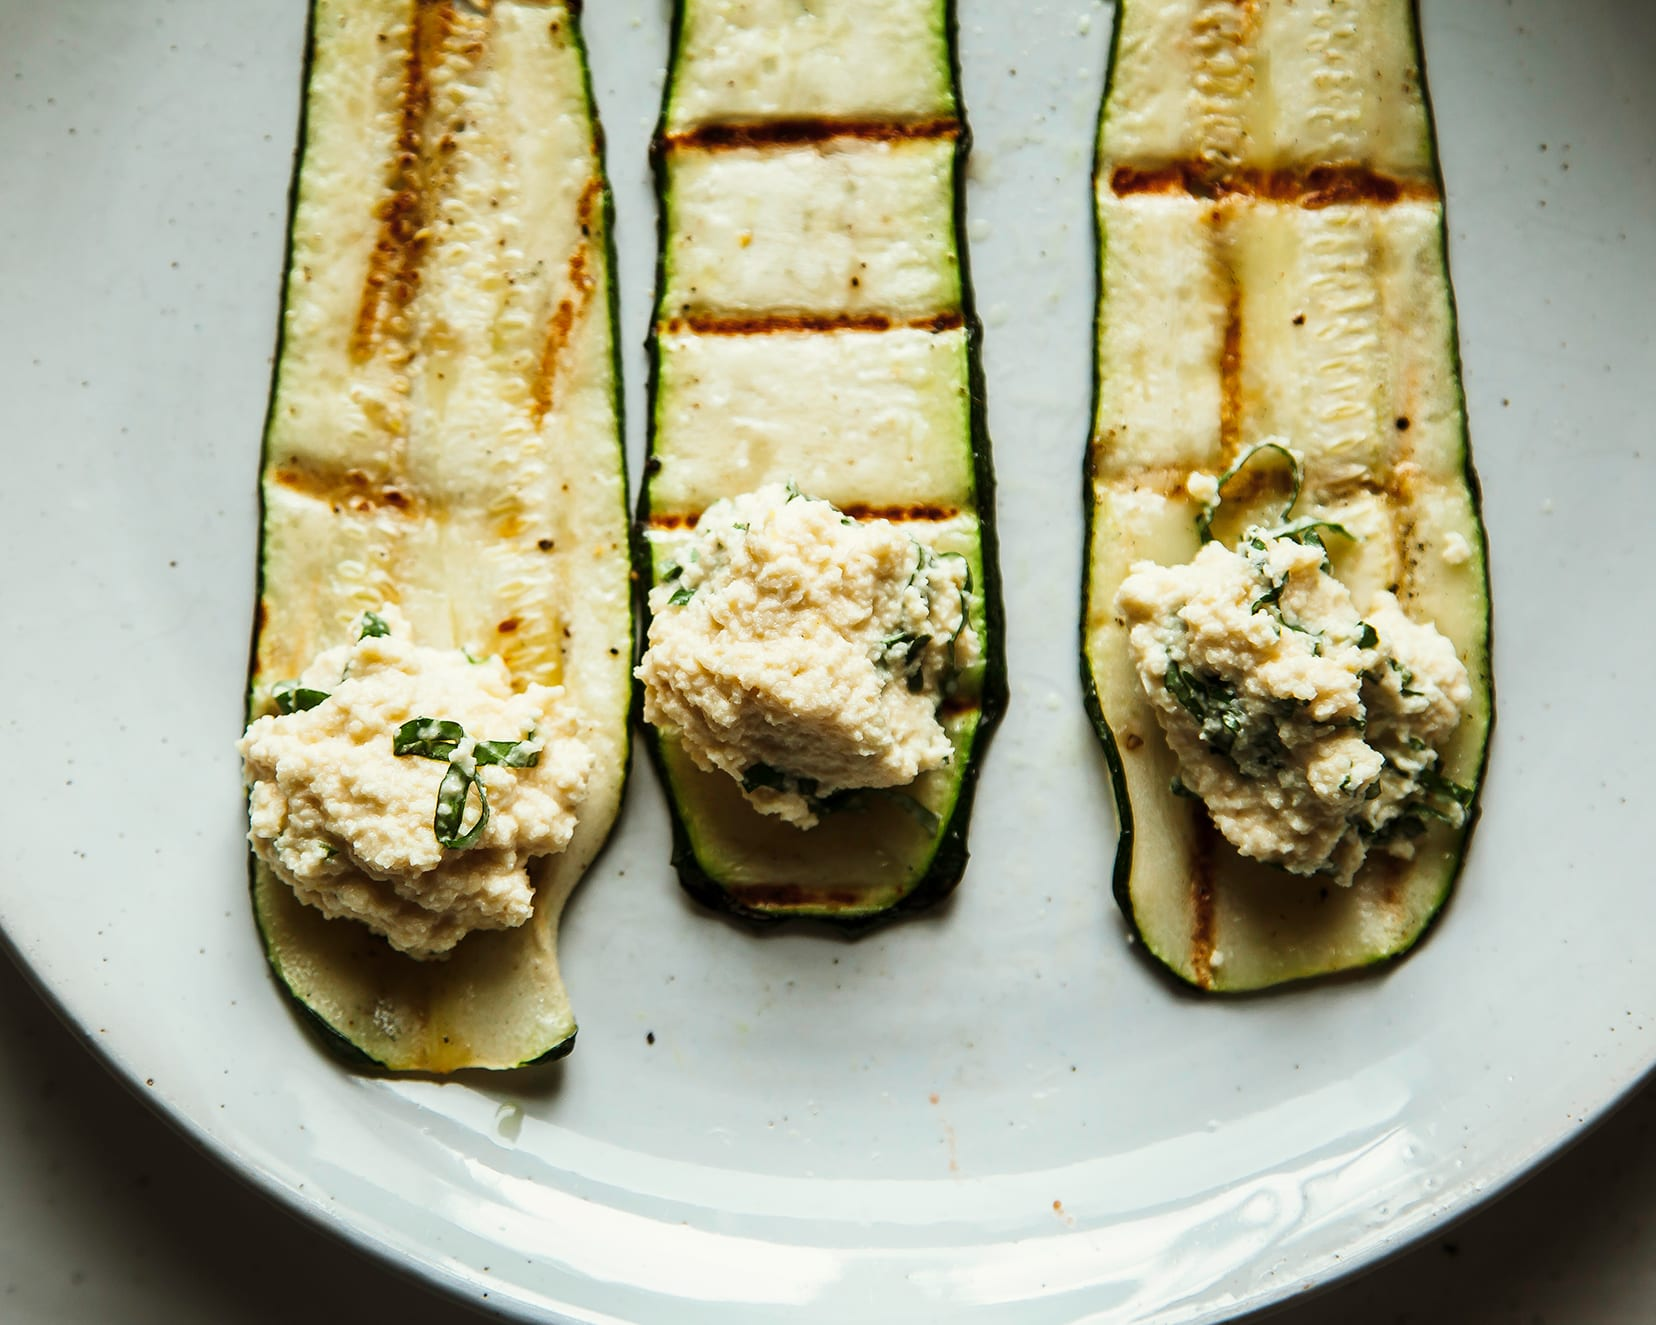 An overhead shot of three grilled strips of zucchini with dollops of herbed almond ricotta on top, ready to be rolled up.